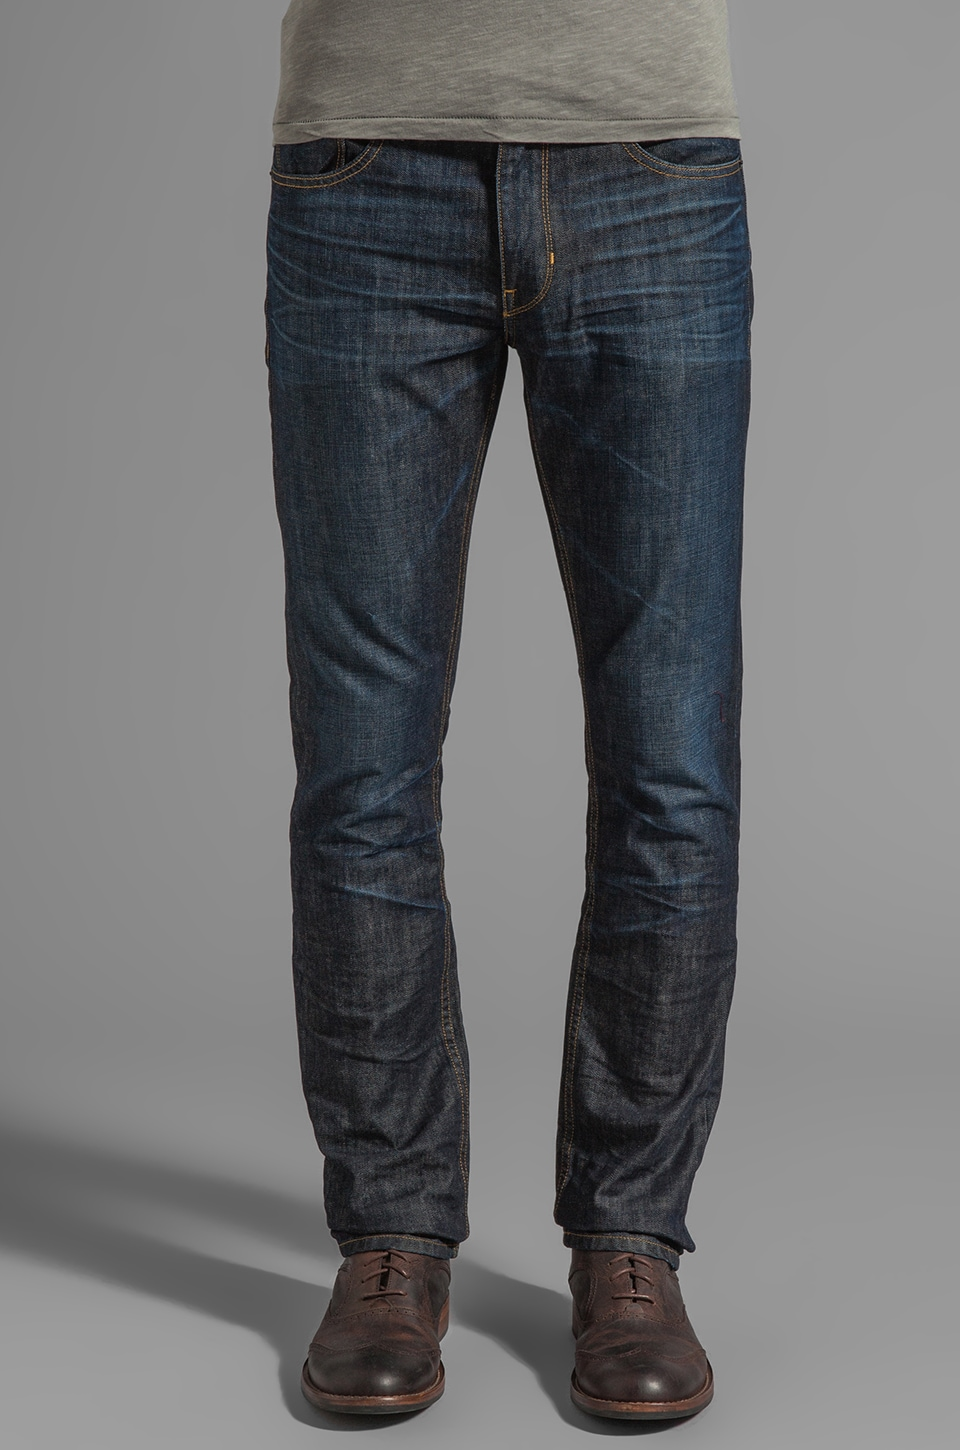 Paige Denim Federal Slim in Fathom